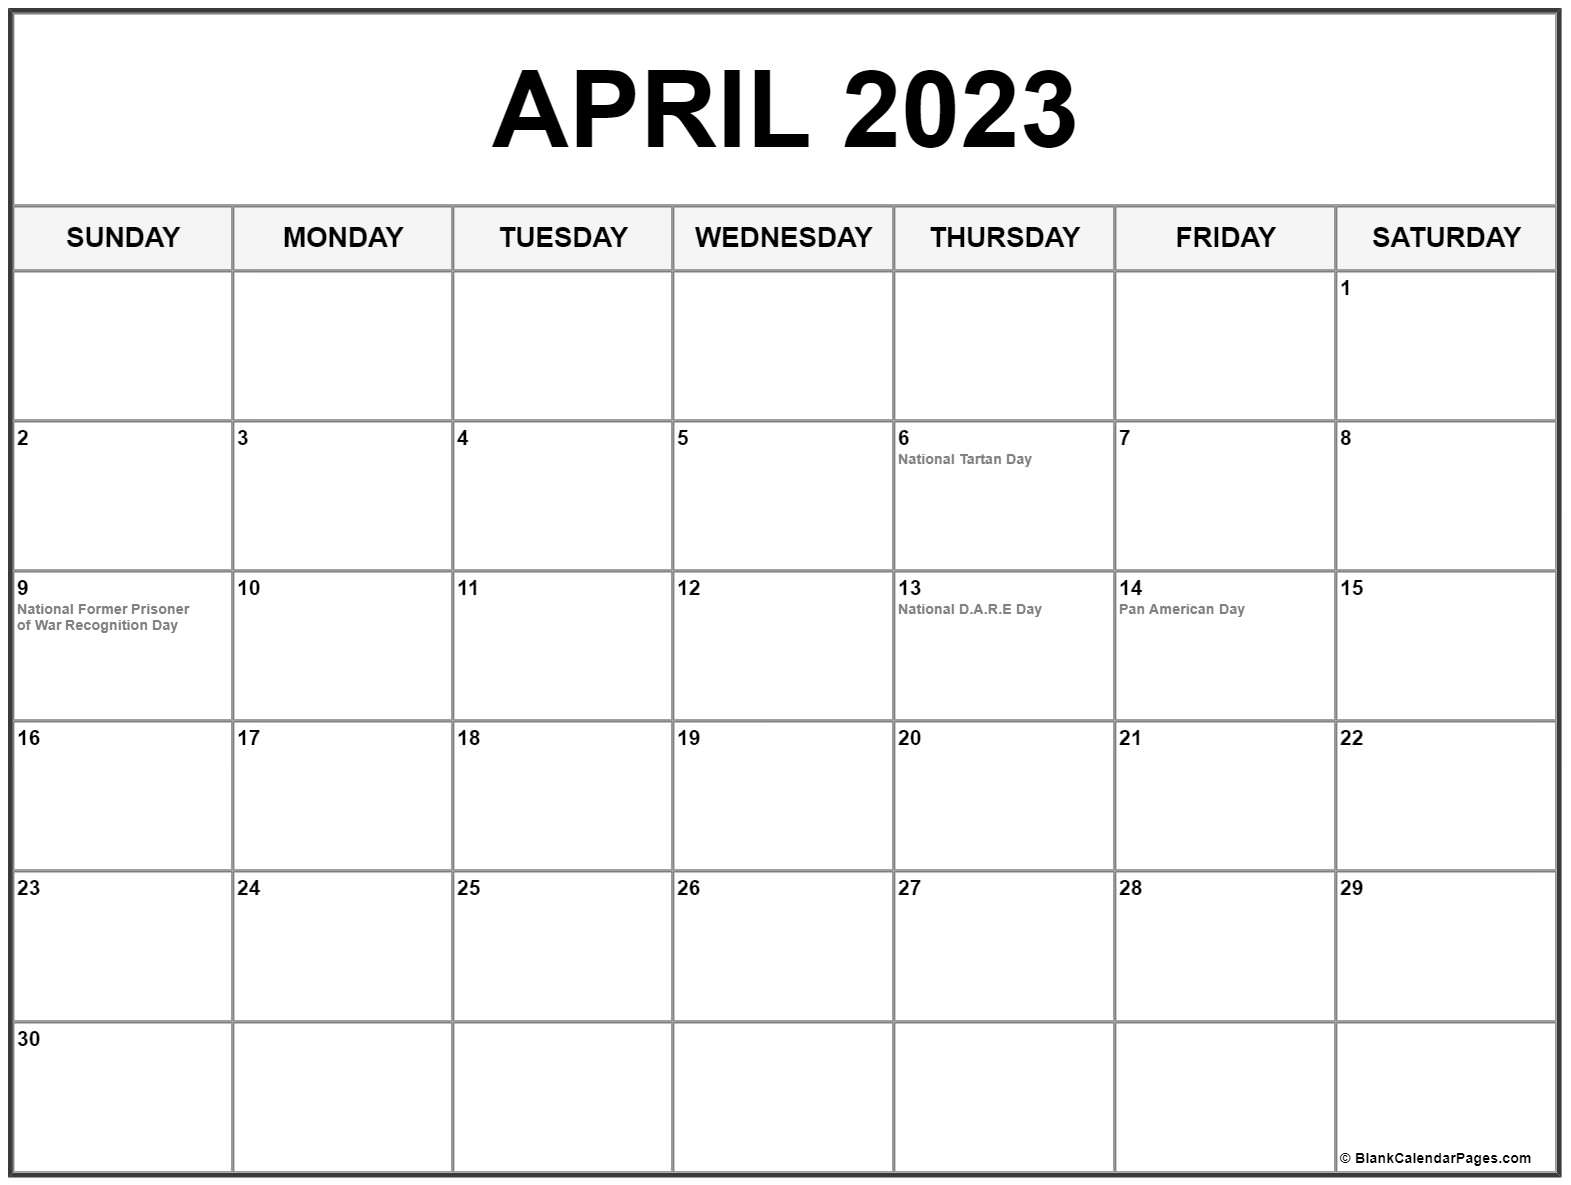 April 2023 calendar with holidays